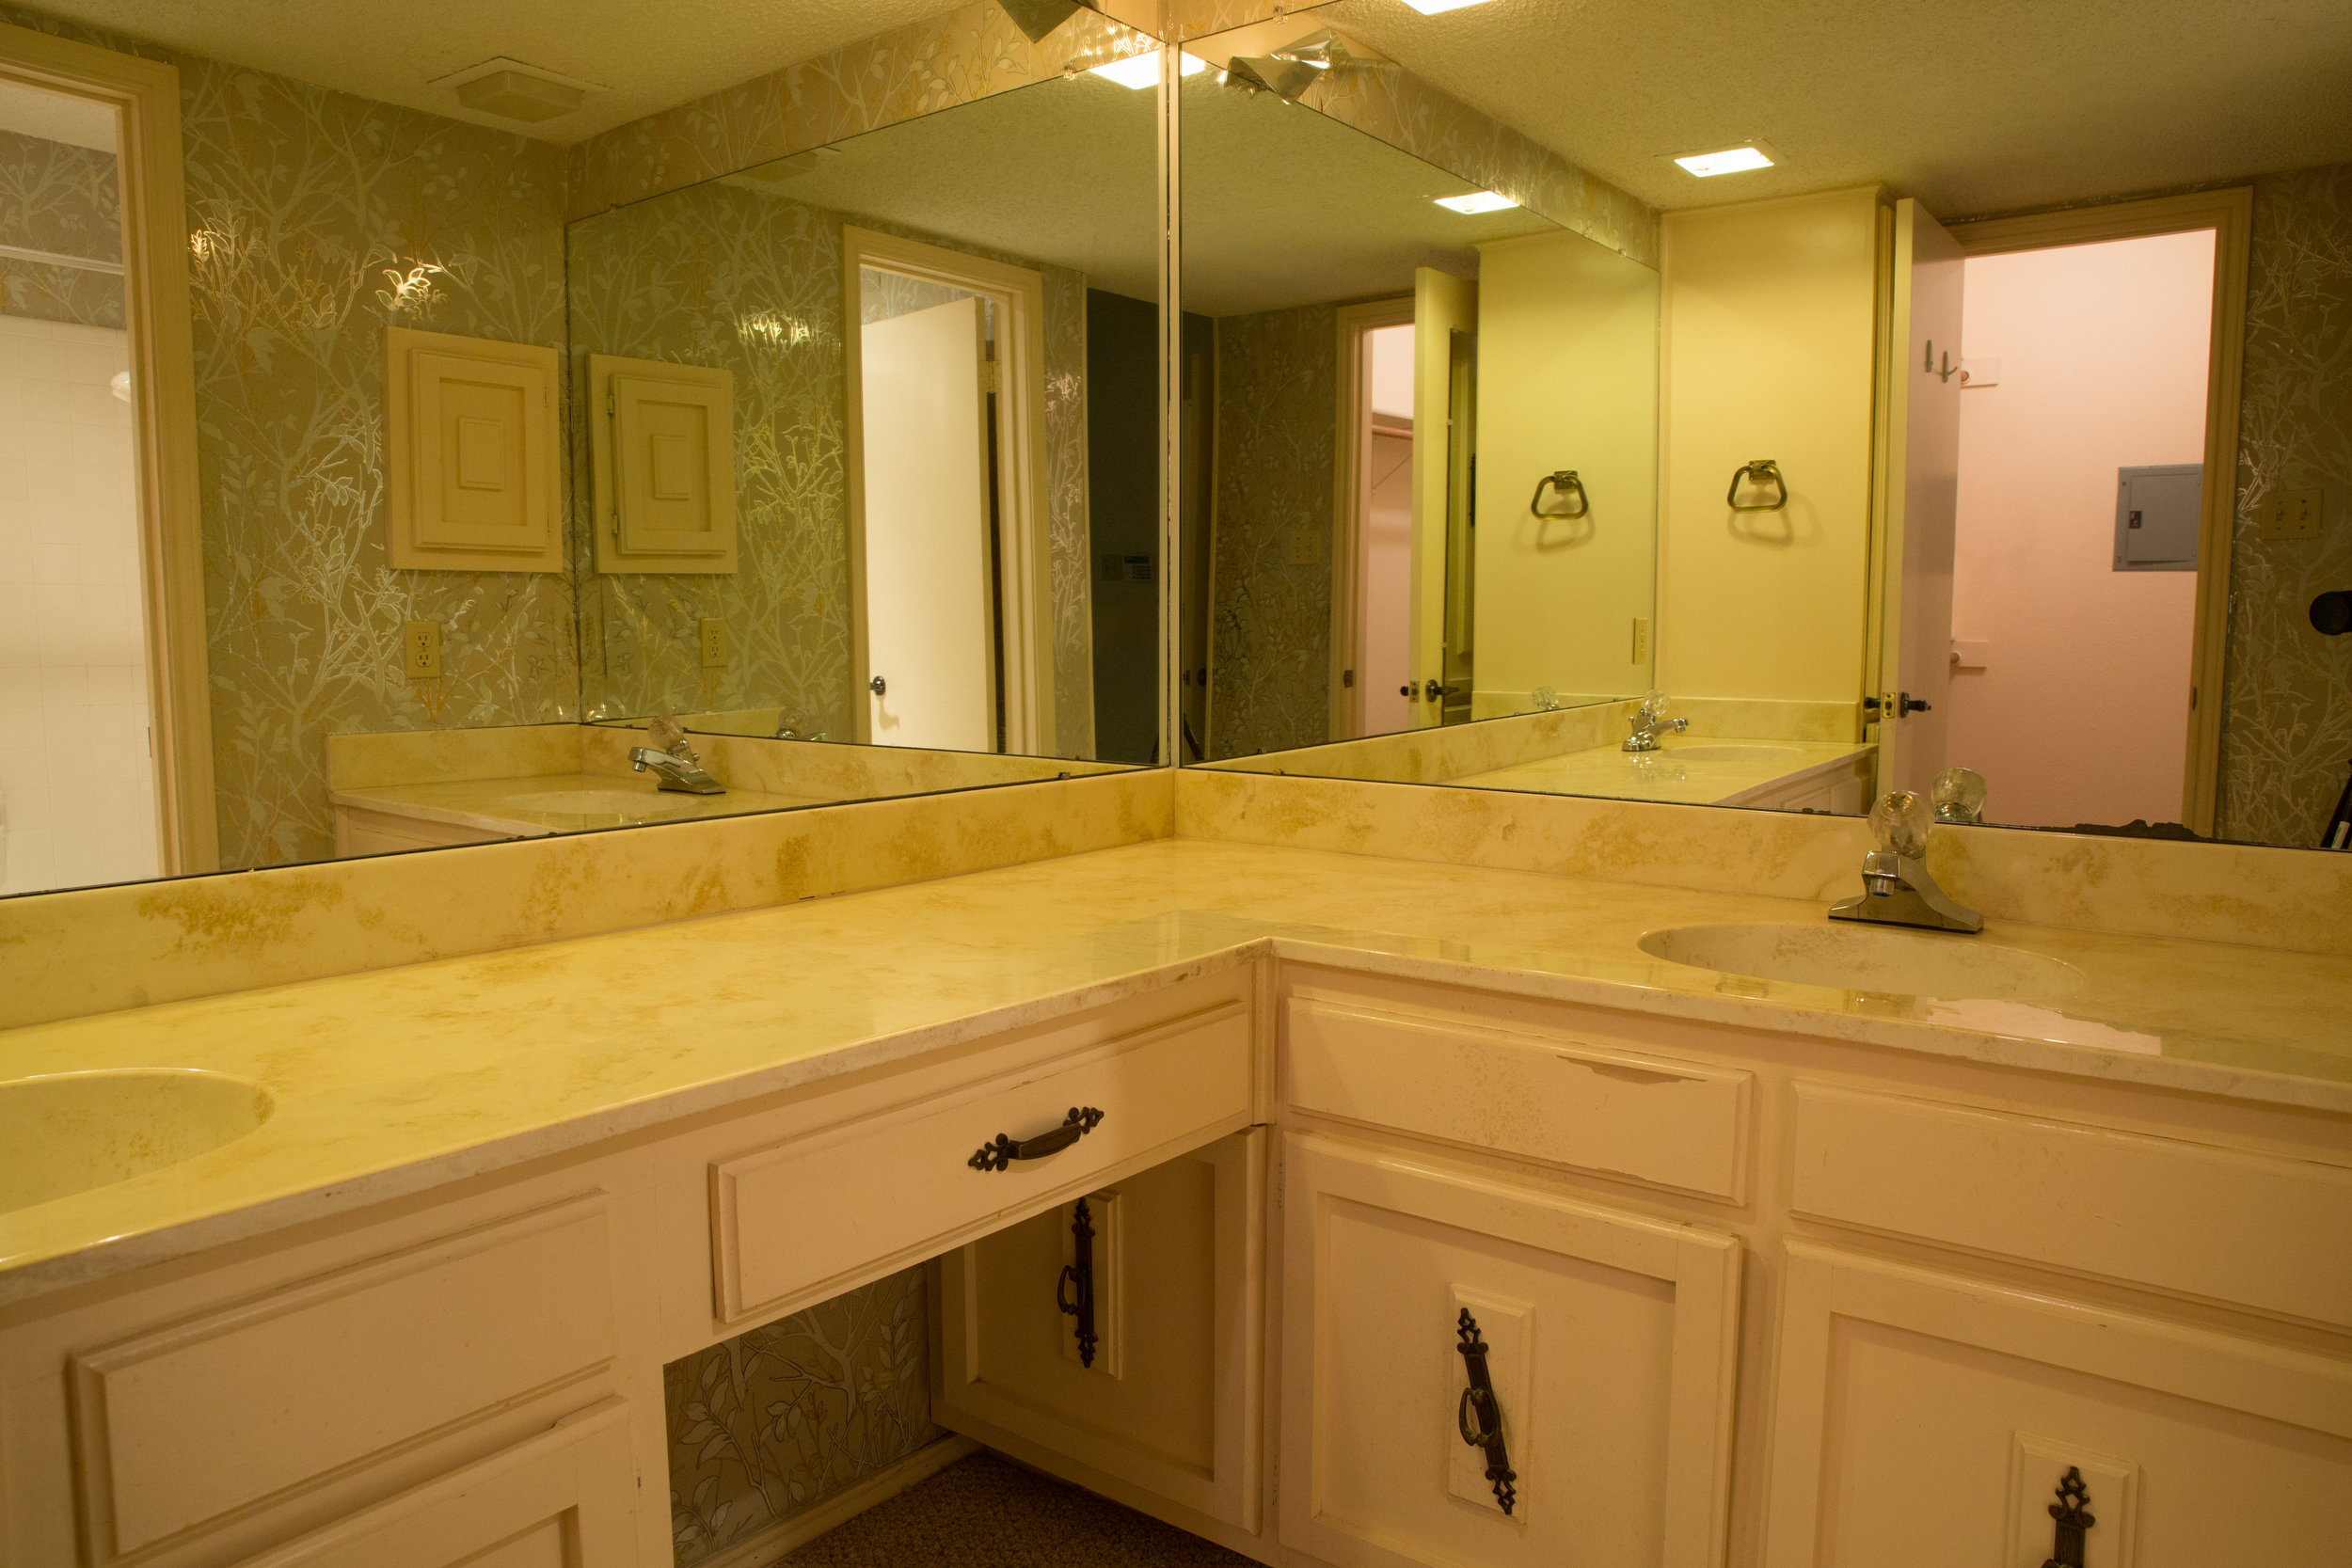 Dated master bathroom before and after complete remodel